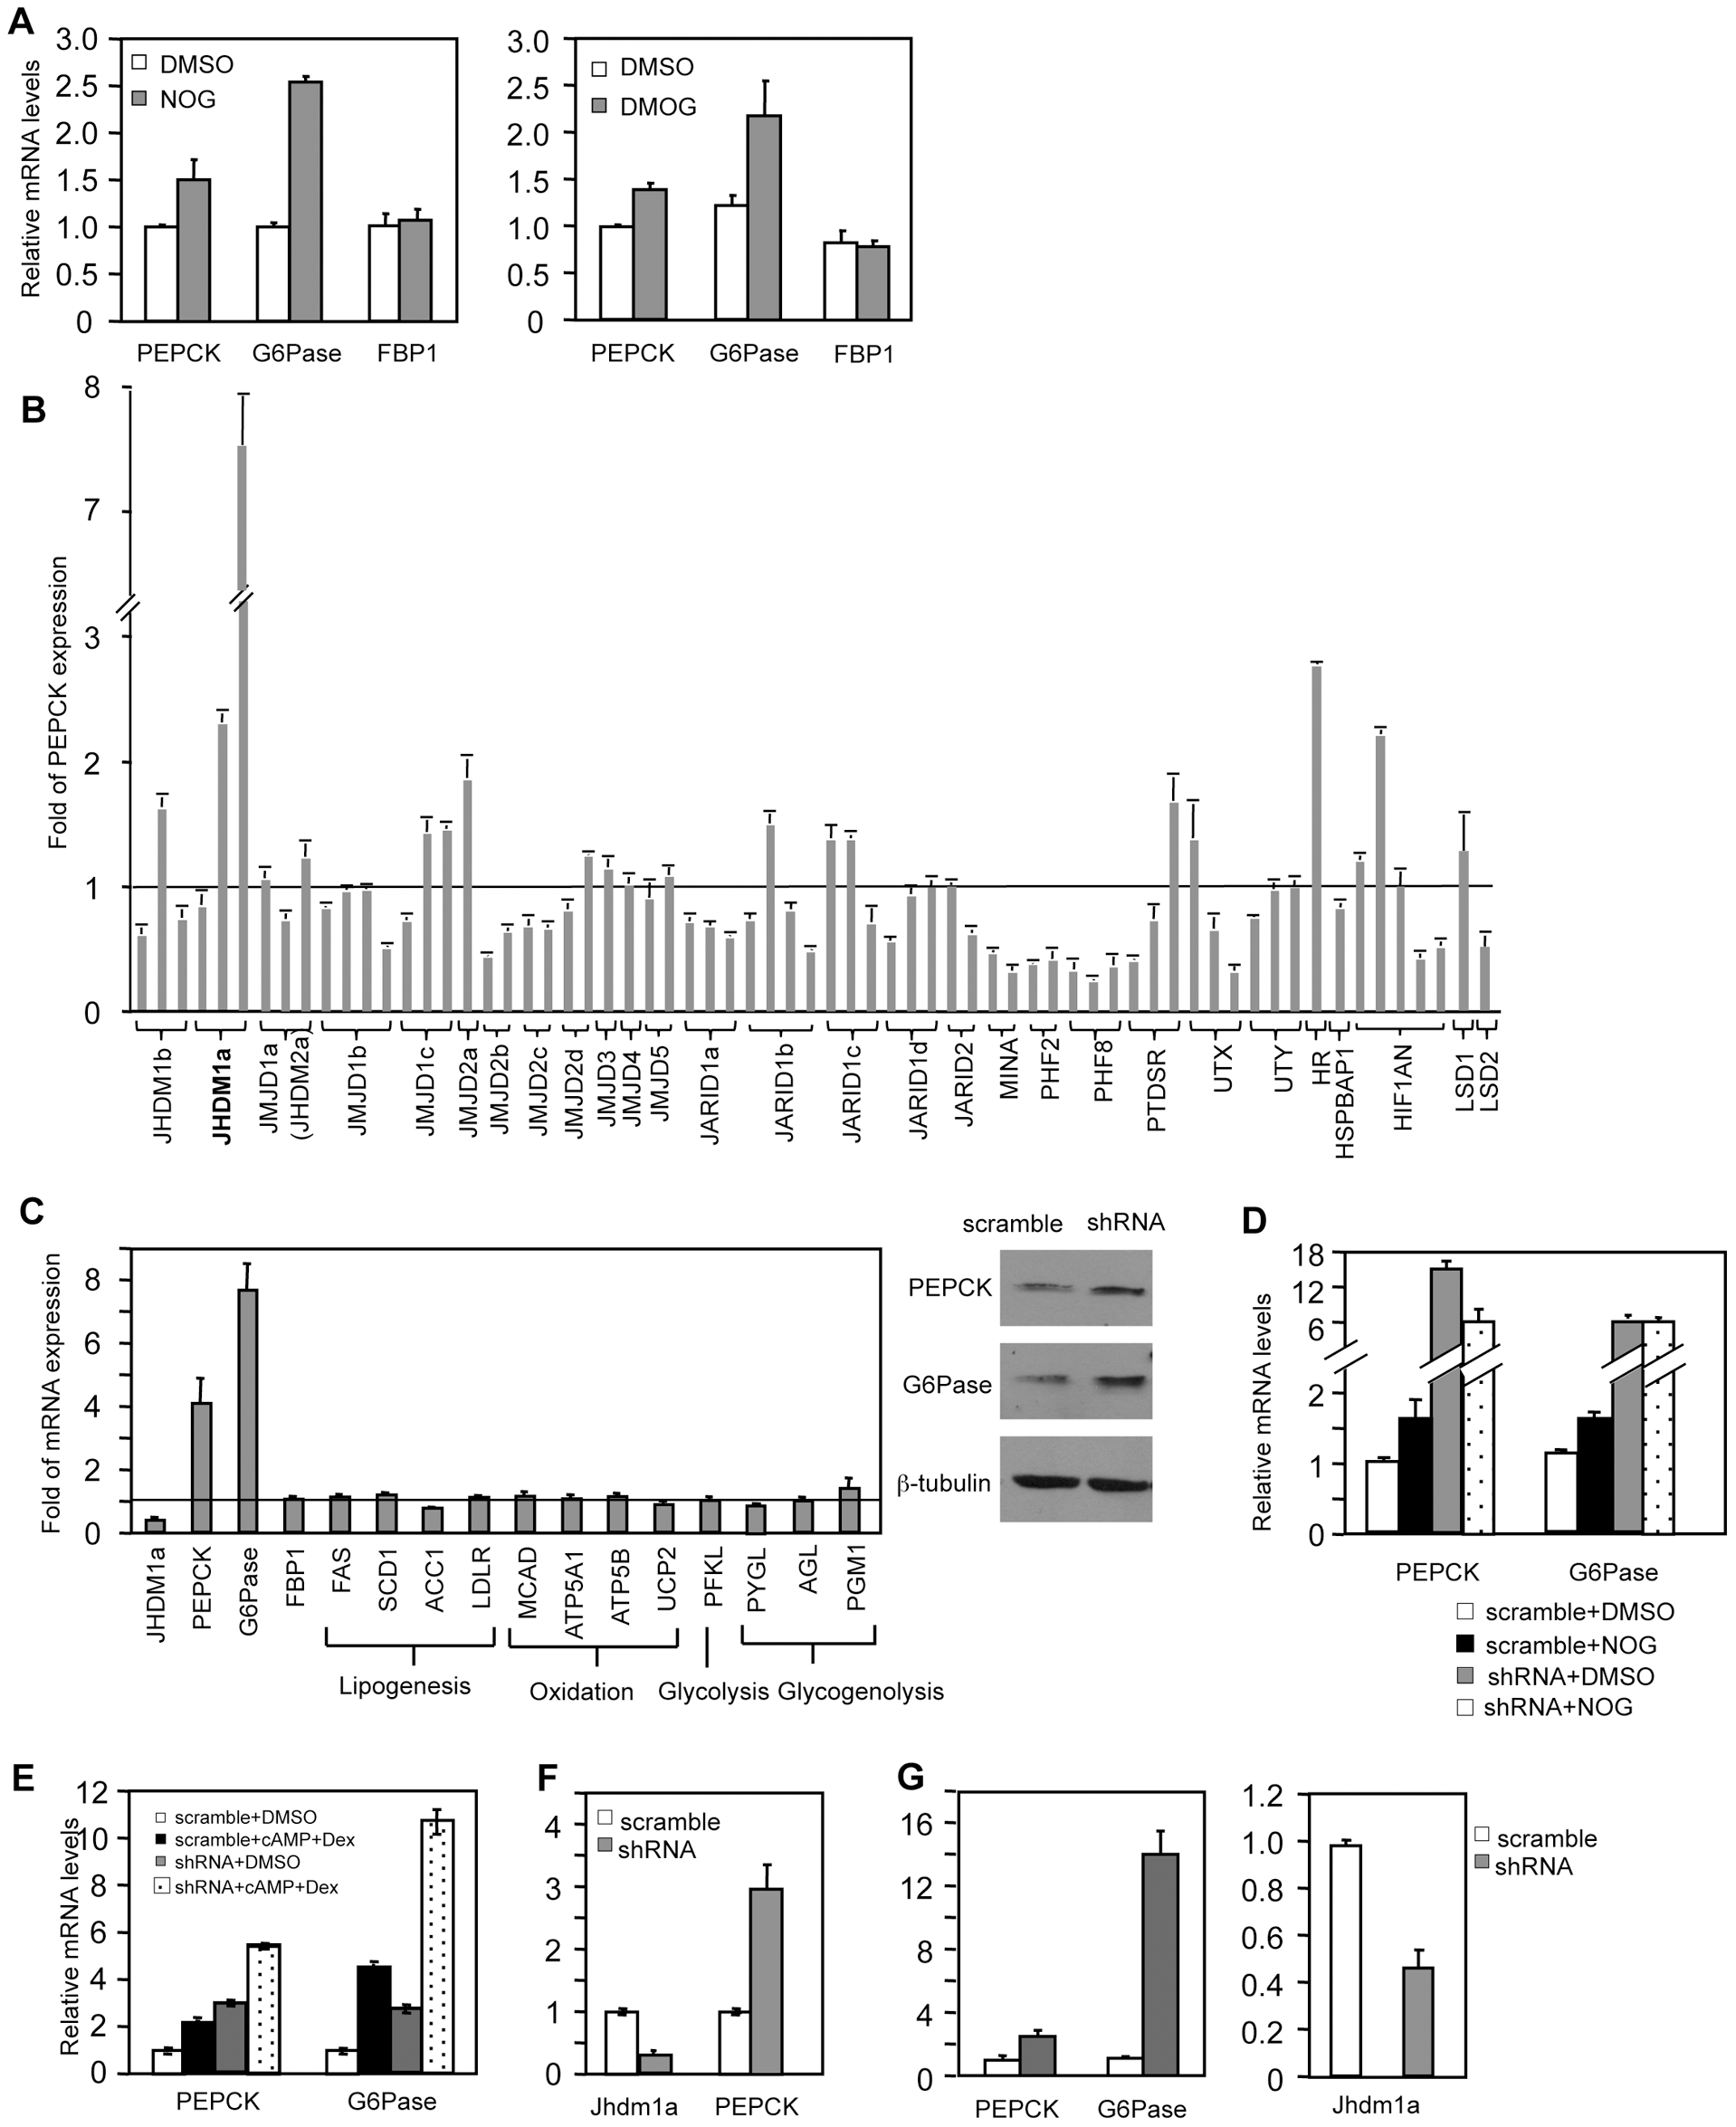 Knockdown of Jhdm1a specifically upregulates PEPCK and G6Pase expression in cultured hepatic cells.